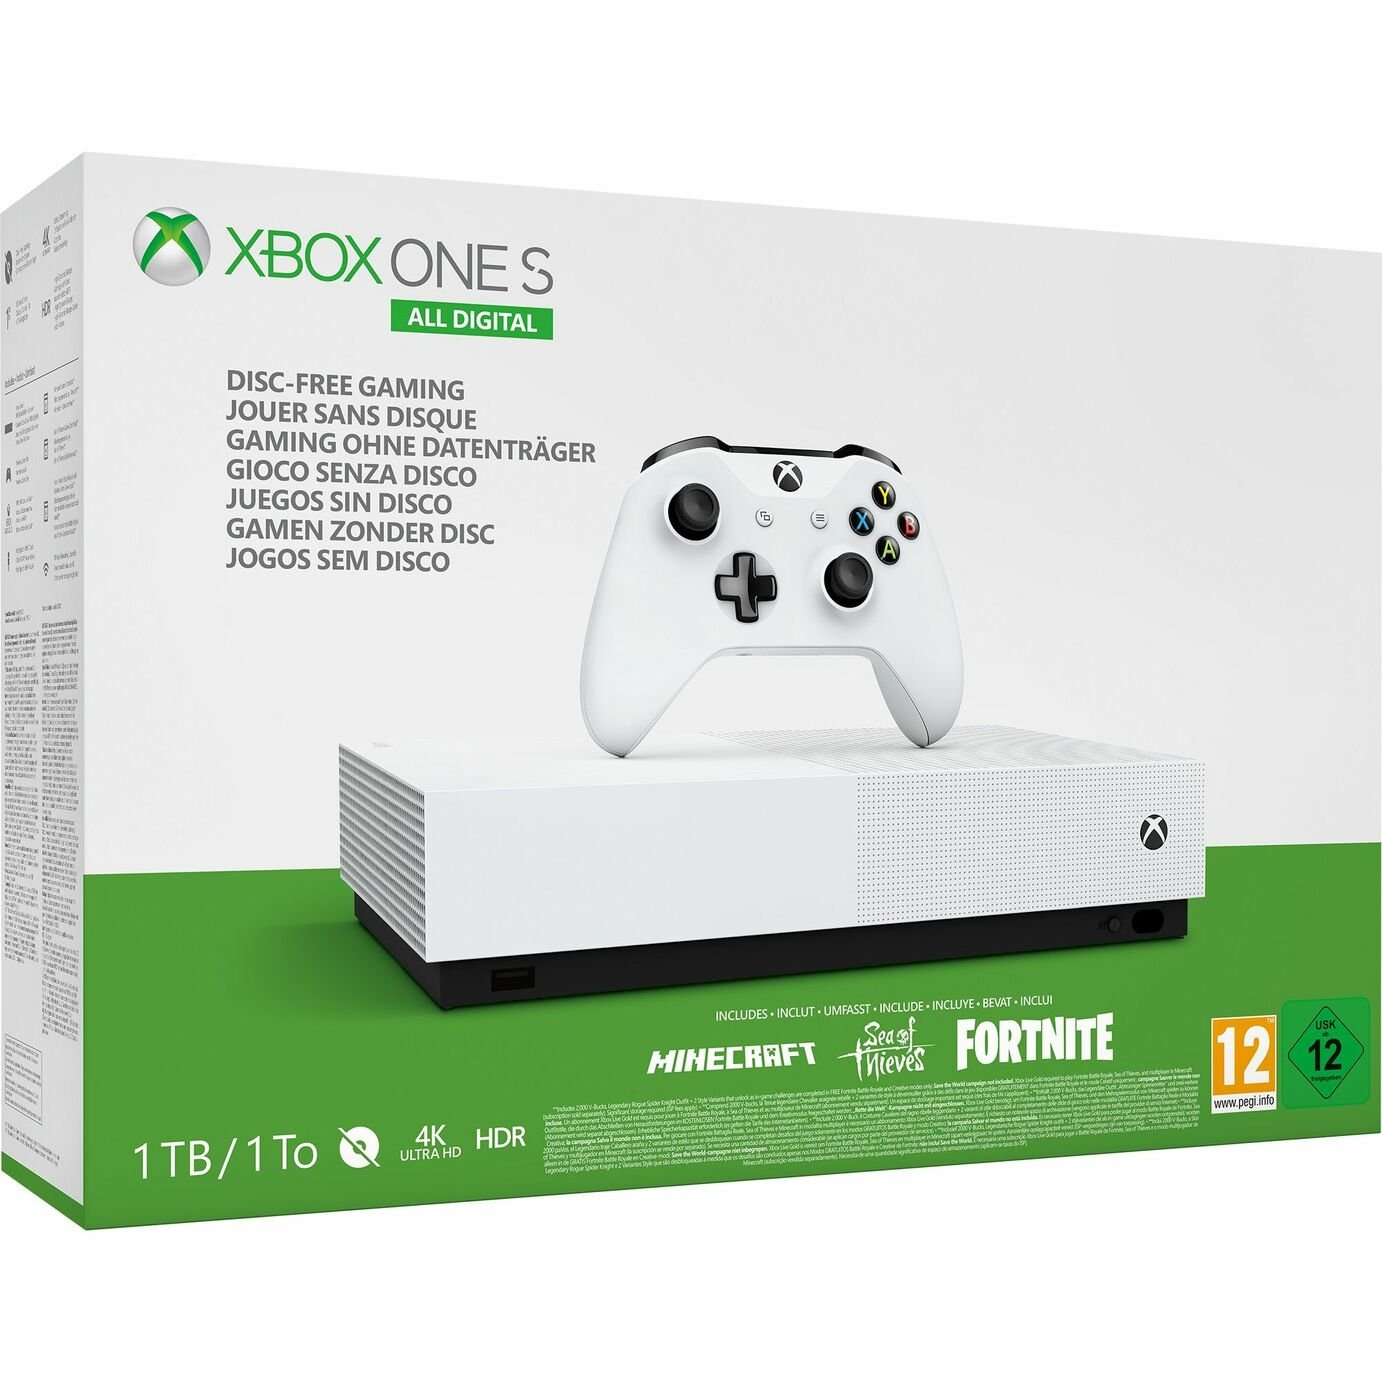 Xbox One S 1TB All Digital Console Fortnite & 2 Game Bundle